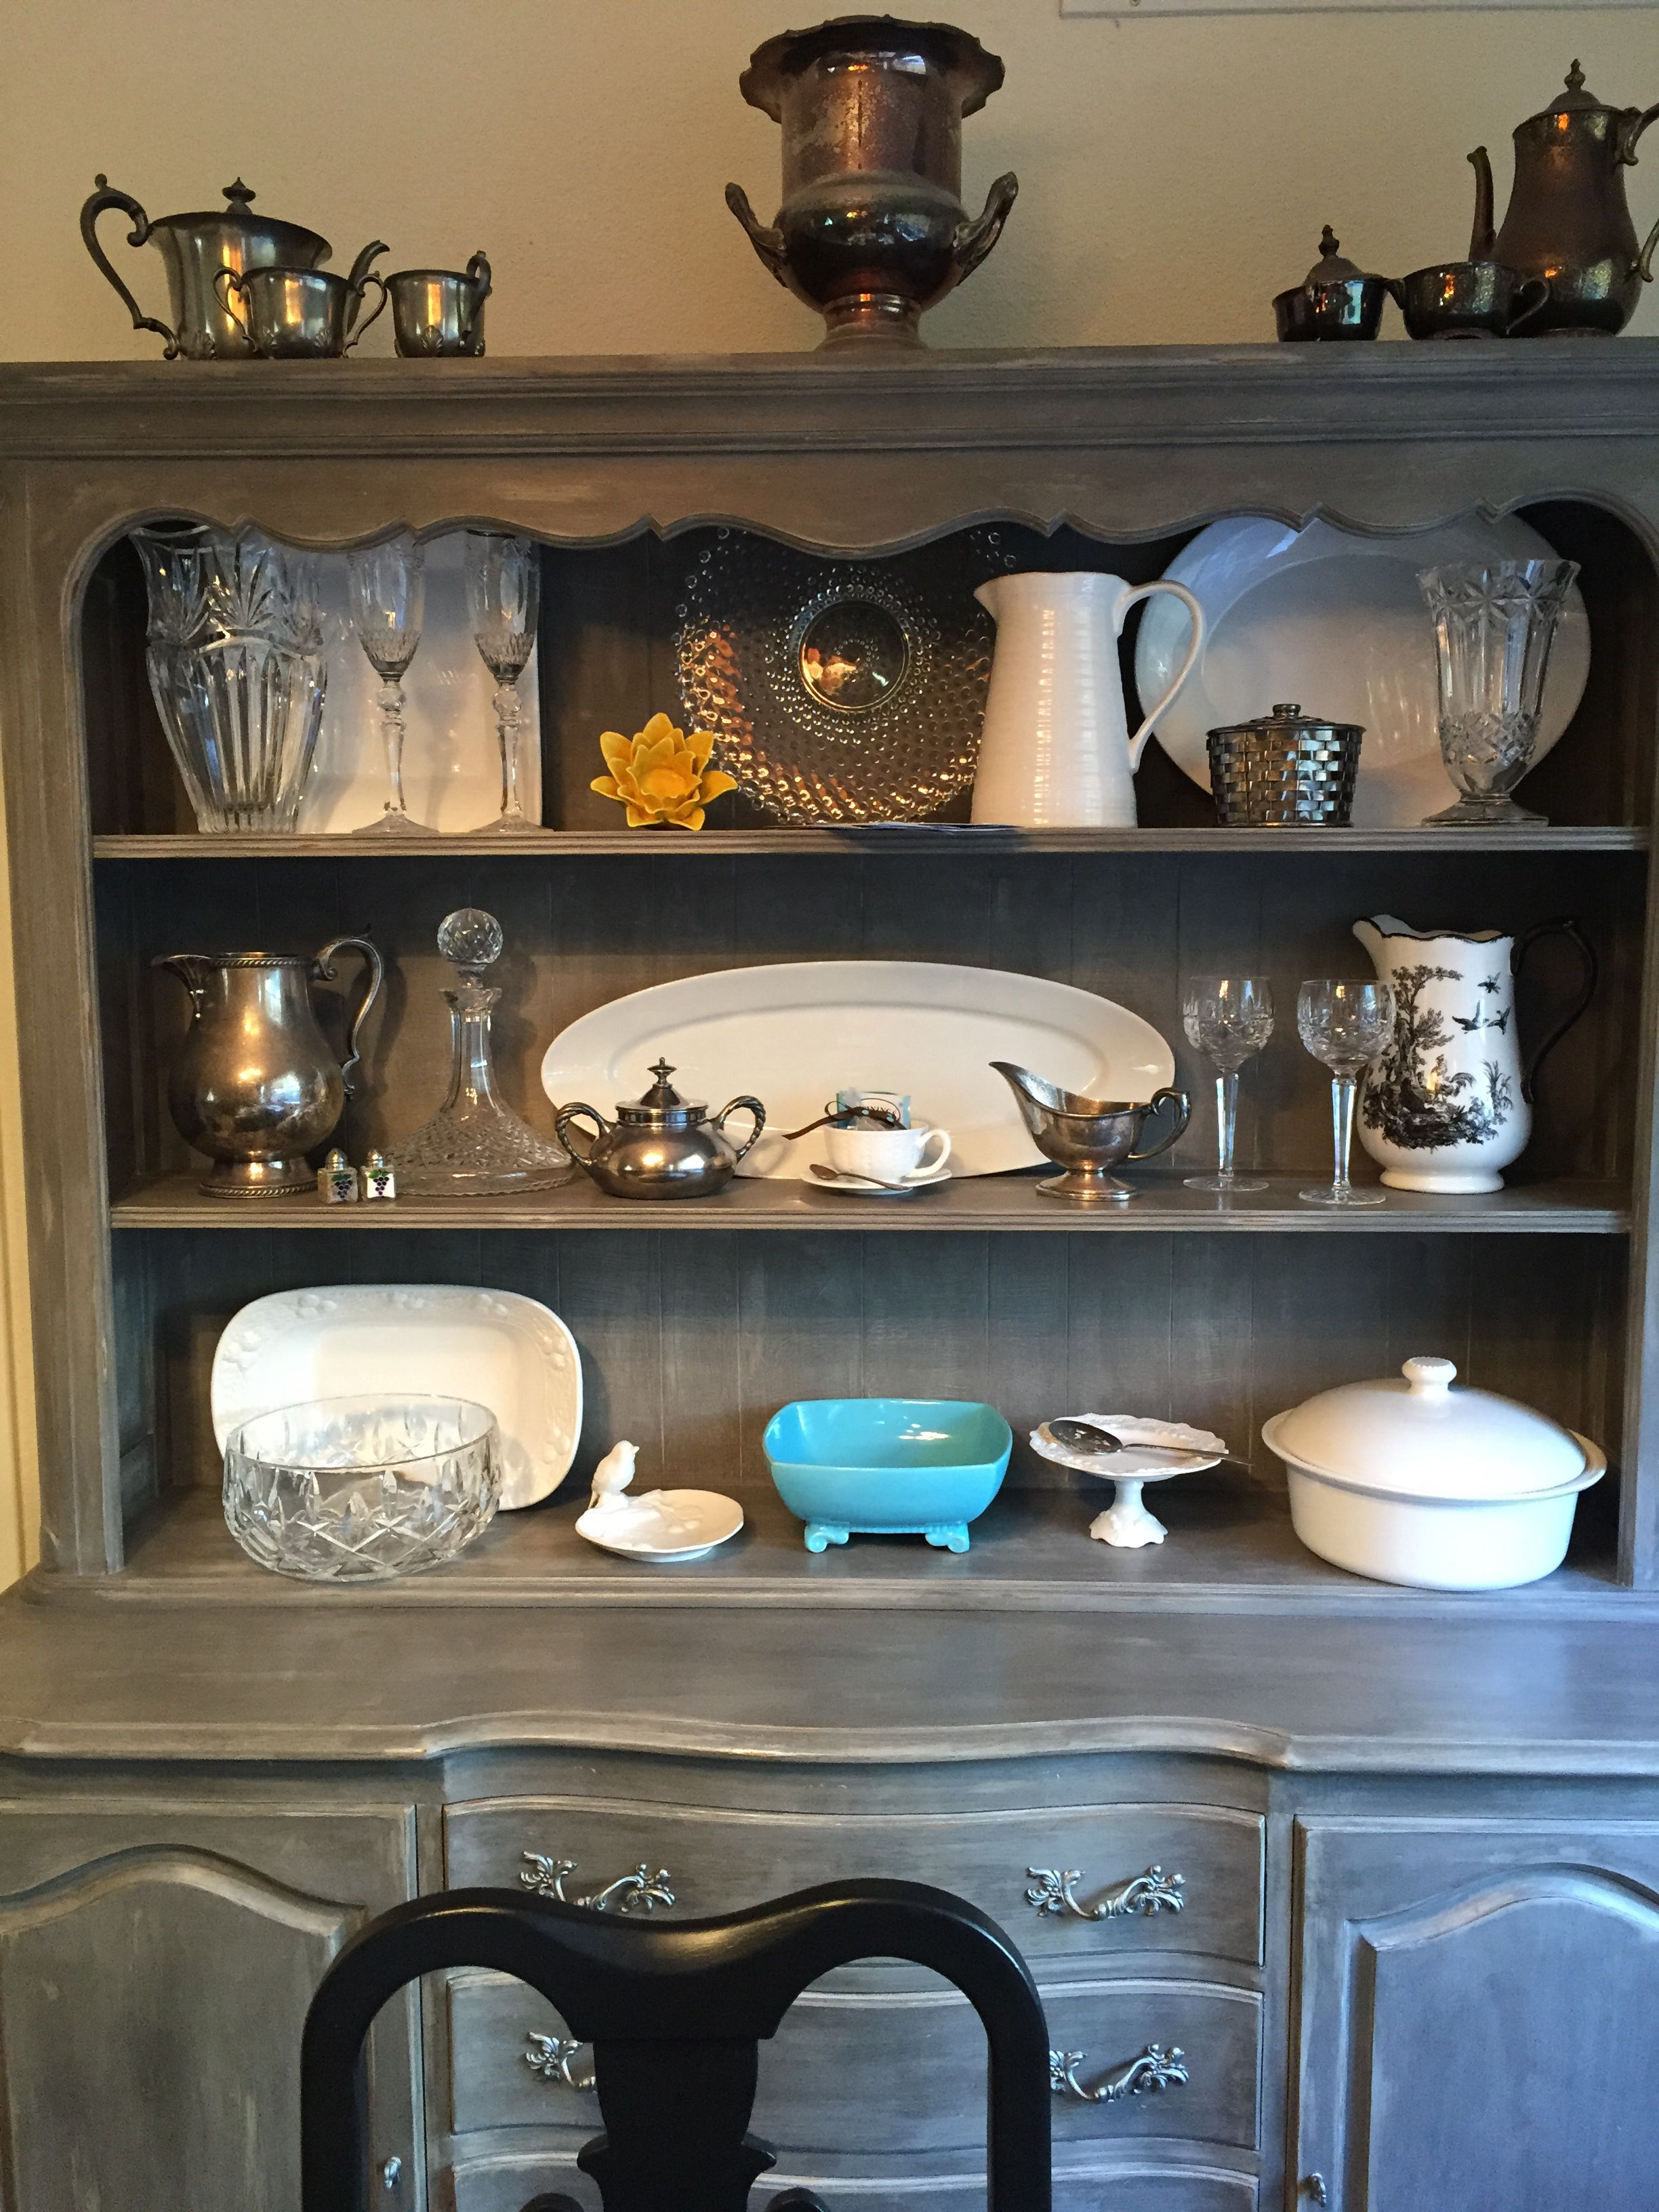 Cece caldwell chalk paint in Seattle Mist and Pittsburgh Grey ...